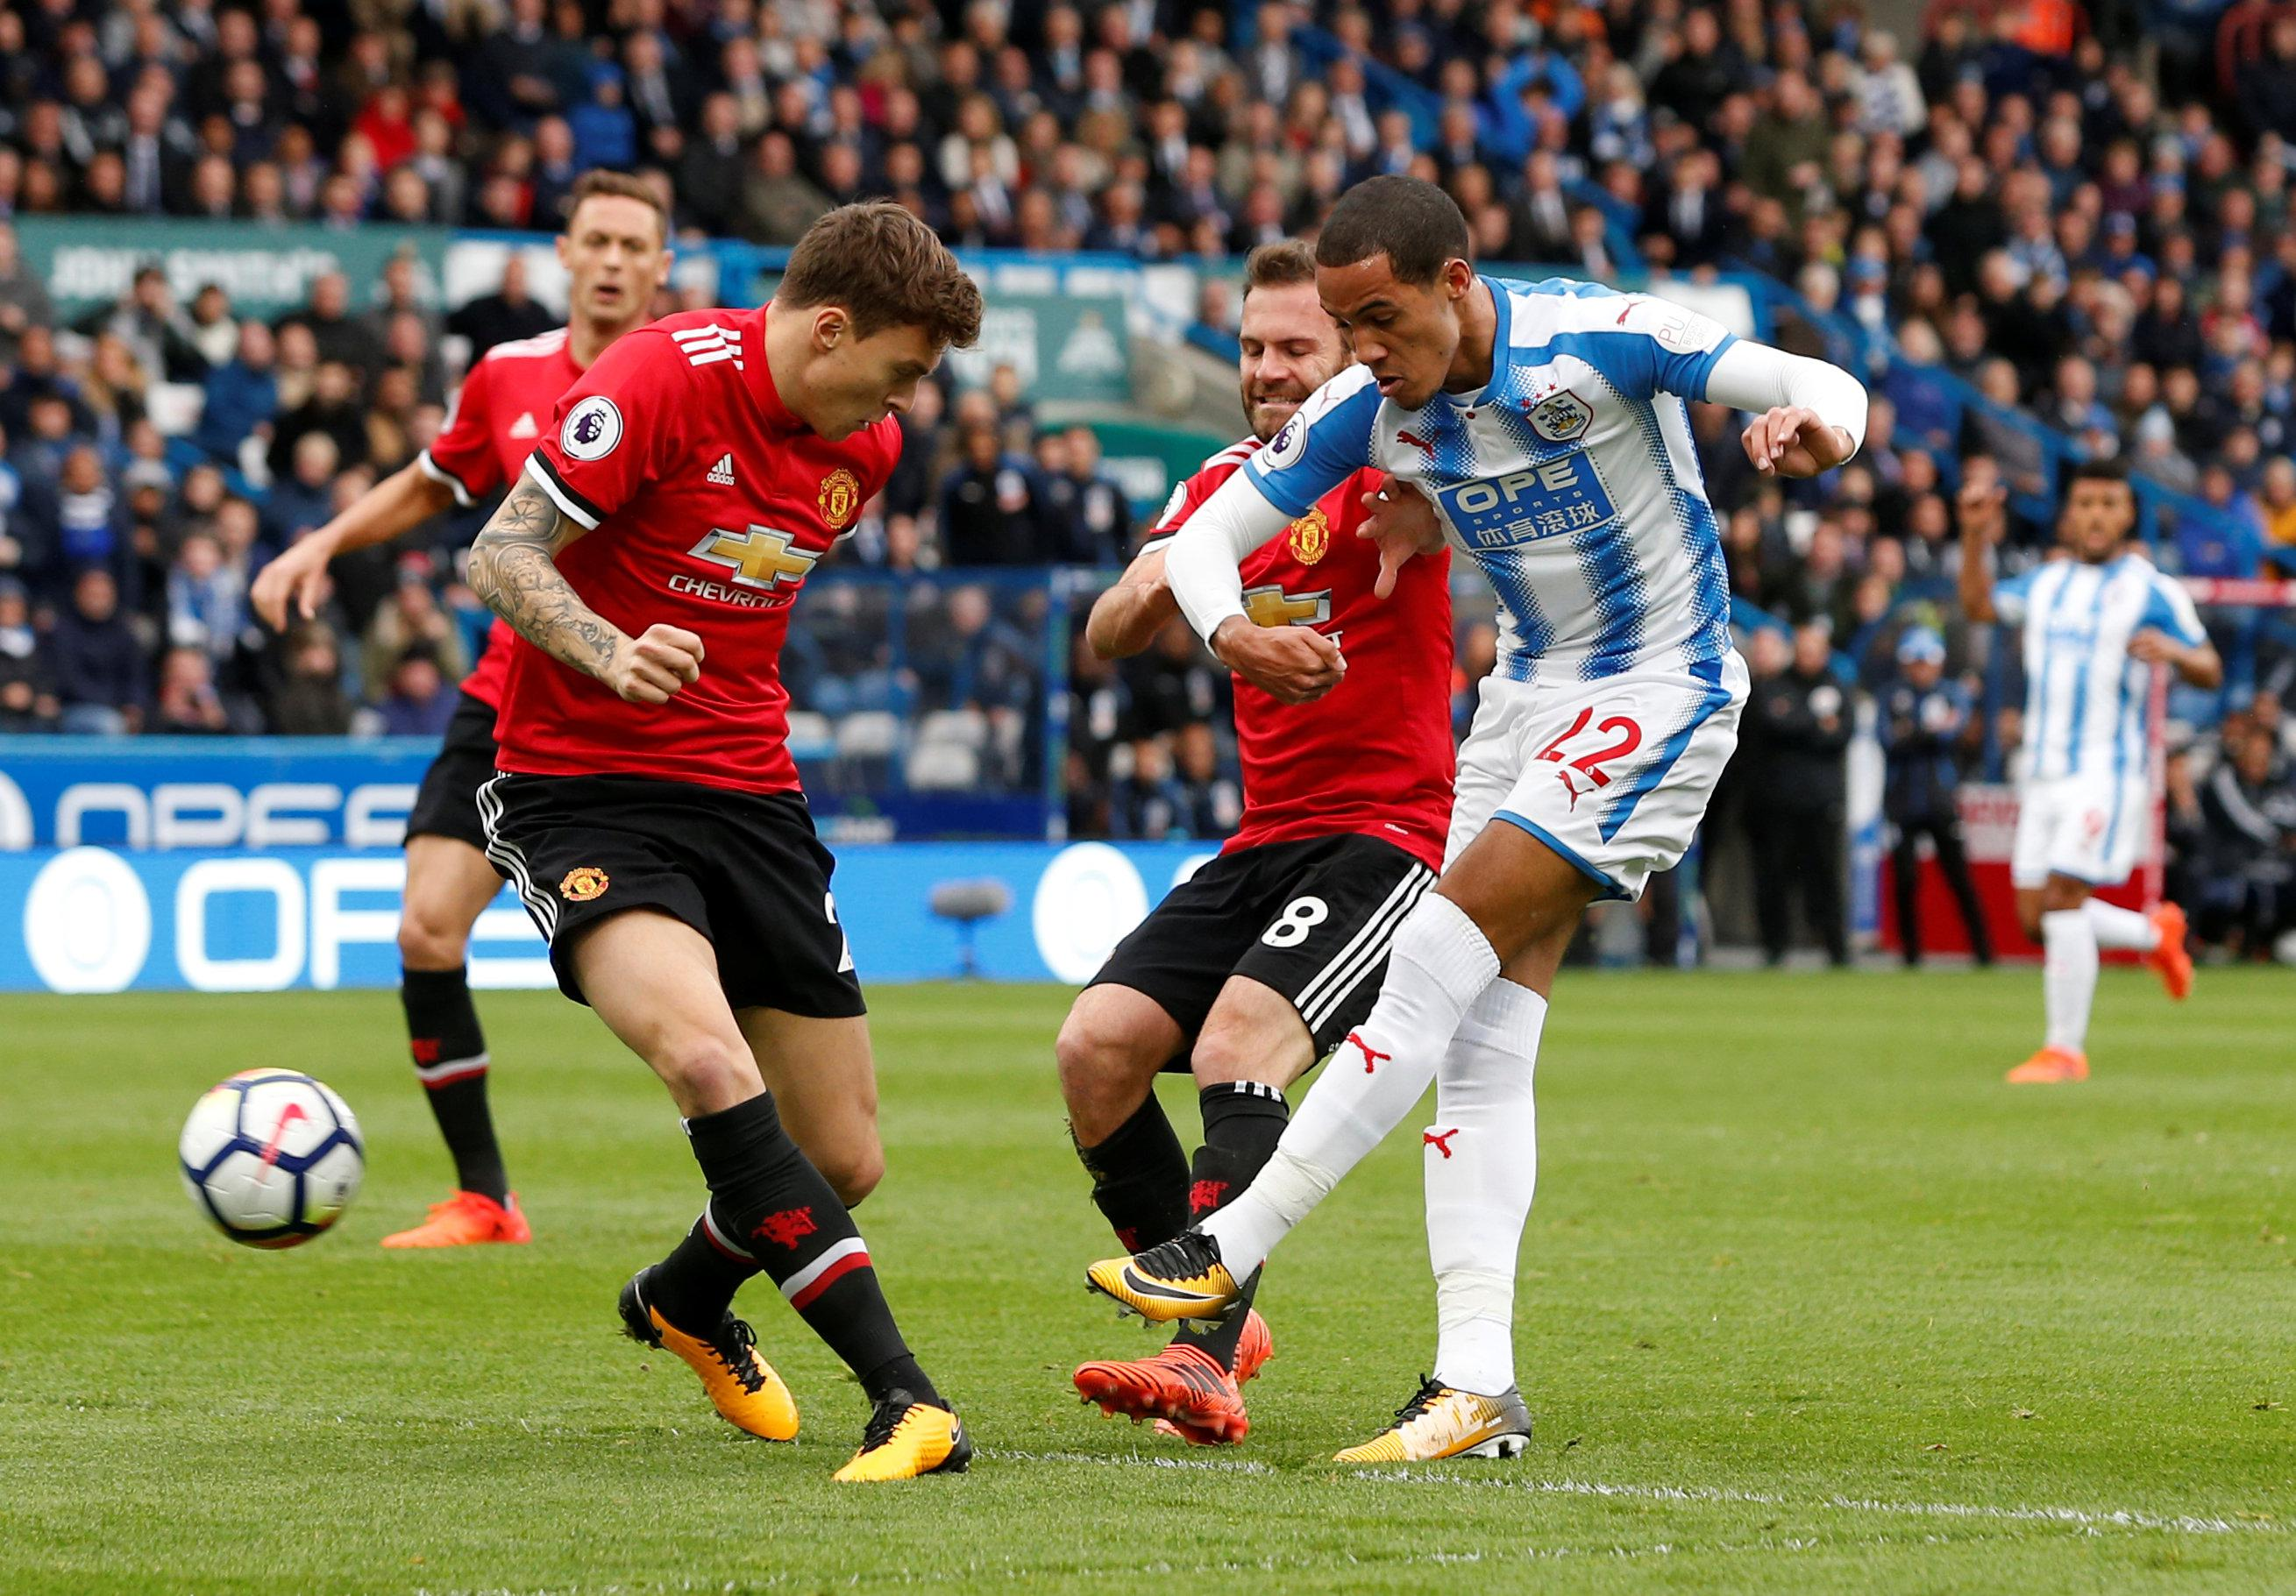 Lindelof was unable to stop Tom Ince in the build up to Huddersfield's first goal